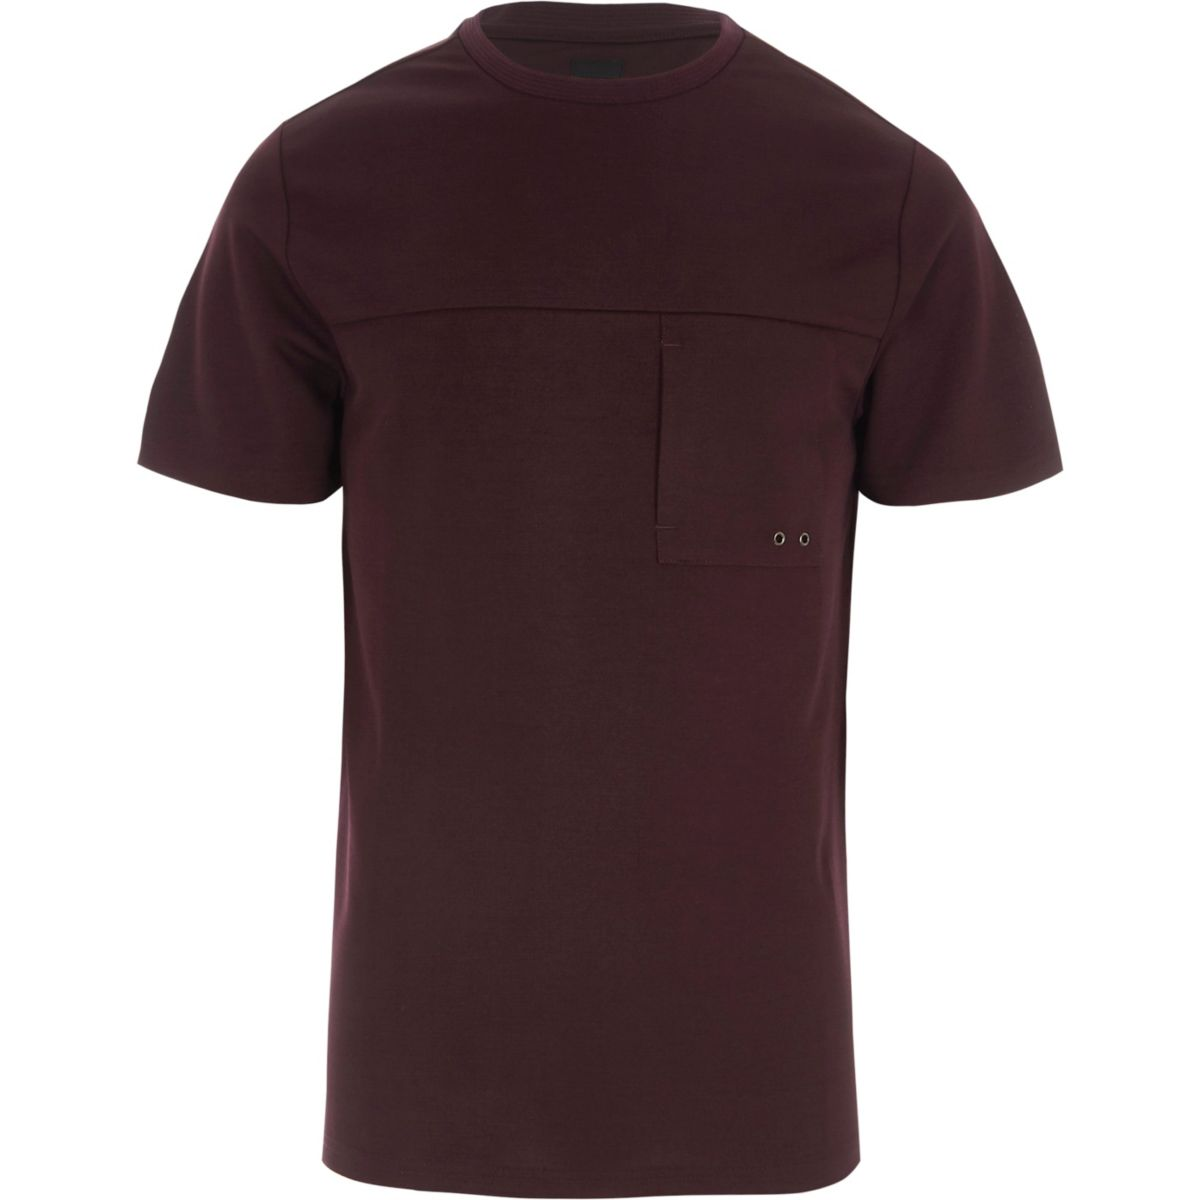 Burgundy slim fit pocket T-shirt